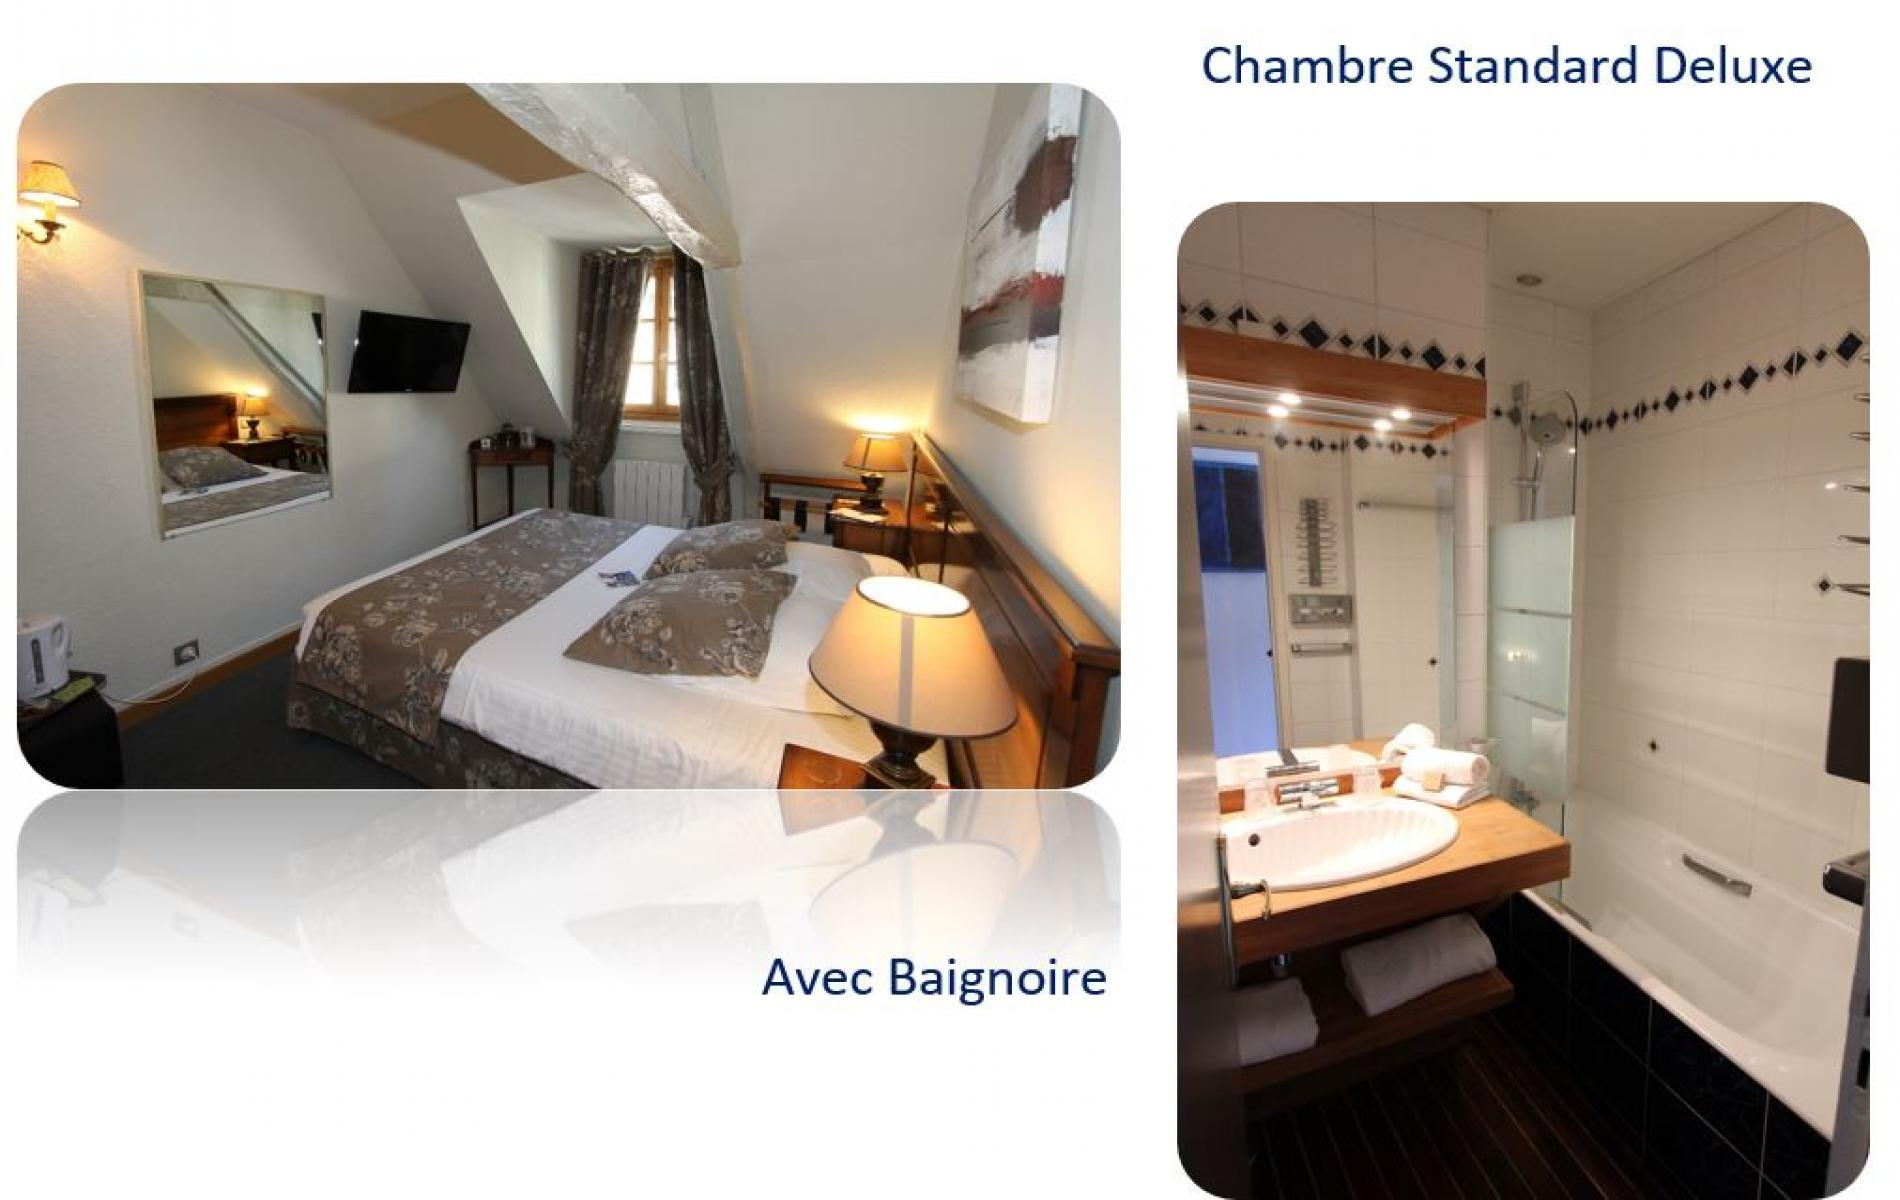 Chambre Standard deluxe